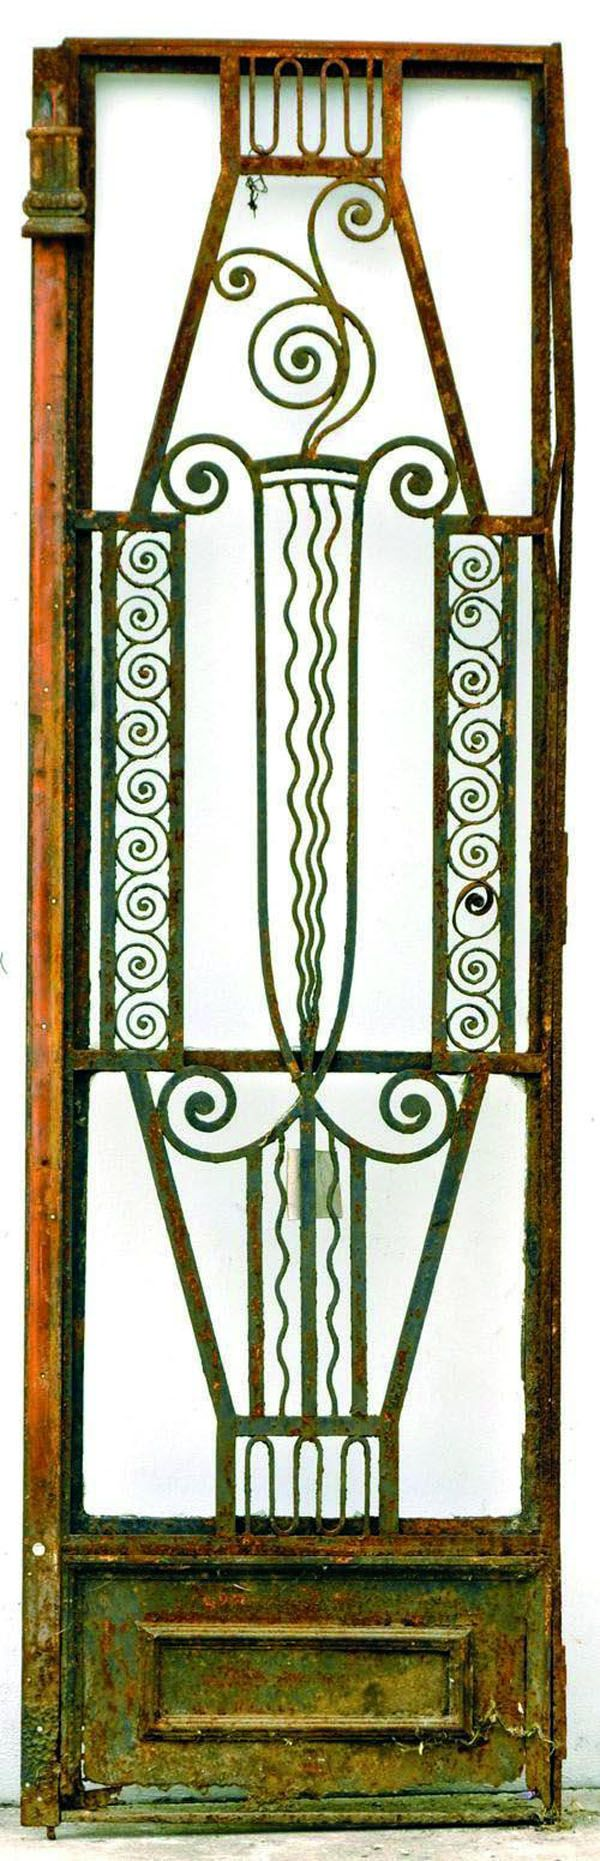 Pin antique garden gates in wrought iron an art nouveau style on - Image Detail For Art Deco Cast Iron Gate With Scroll Decorations Structural Gates